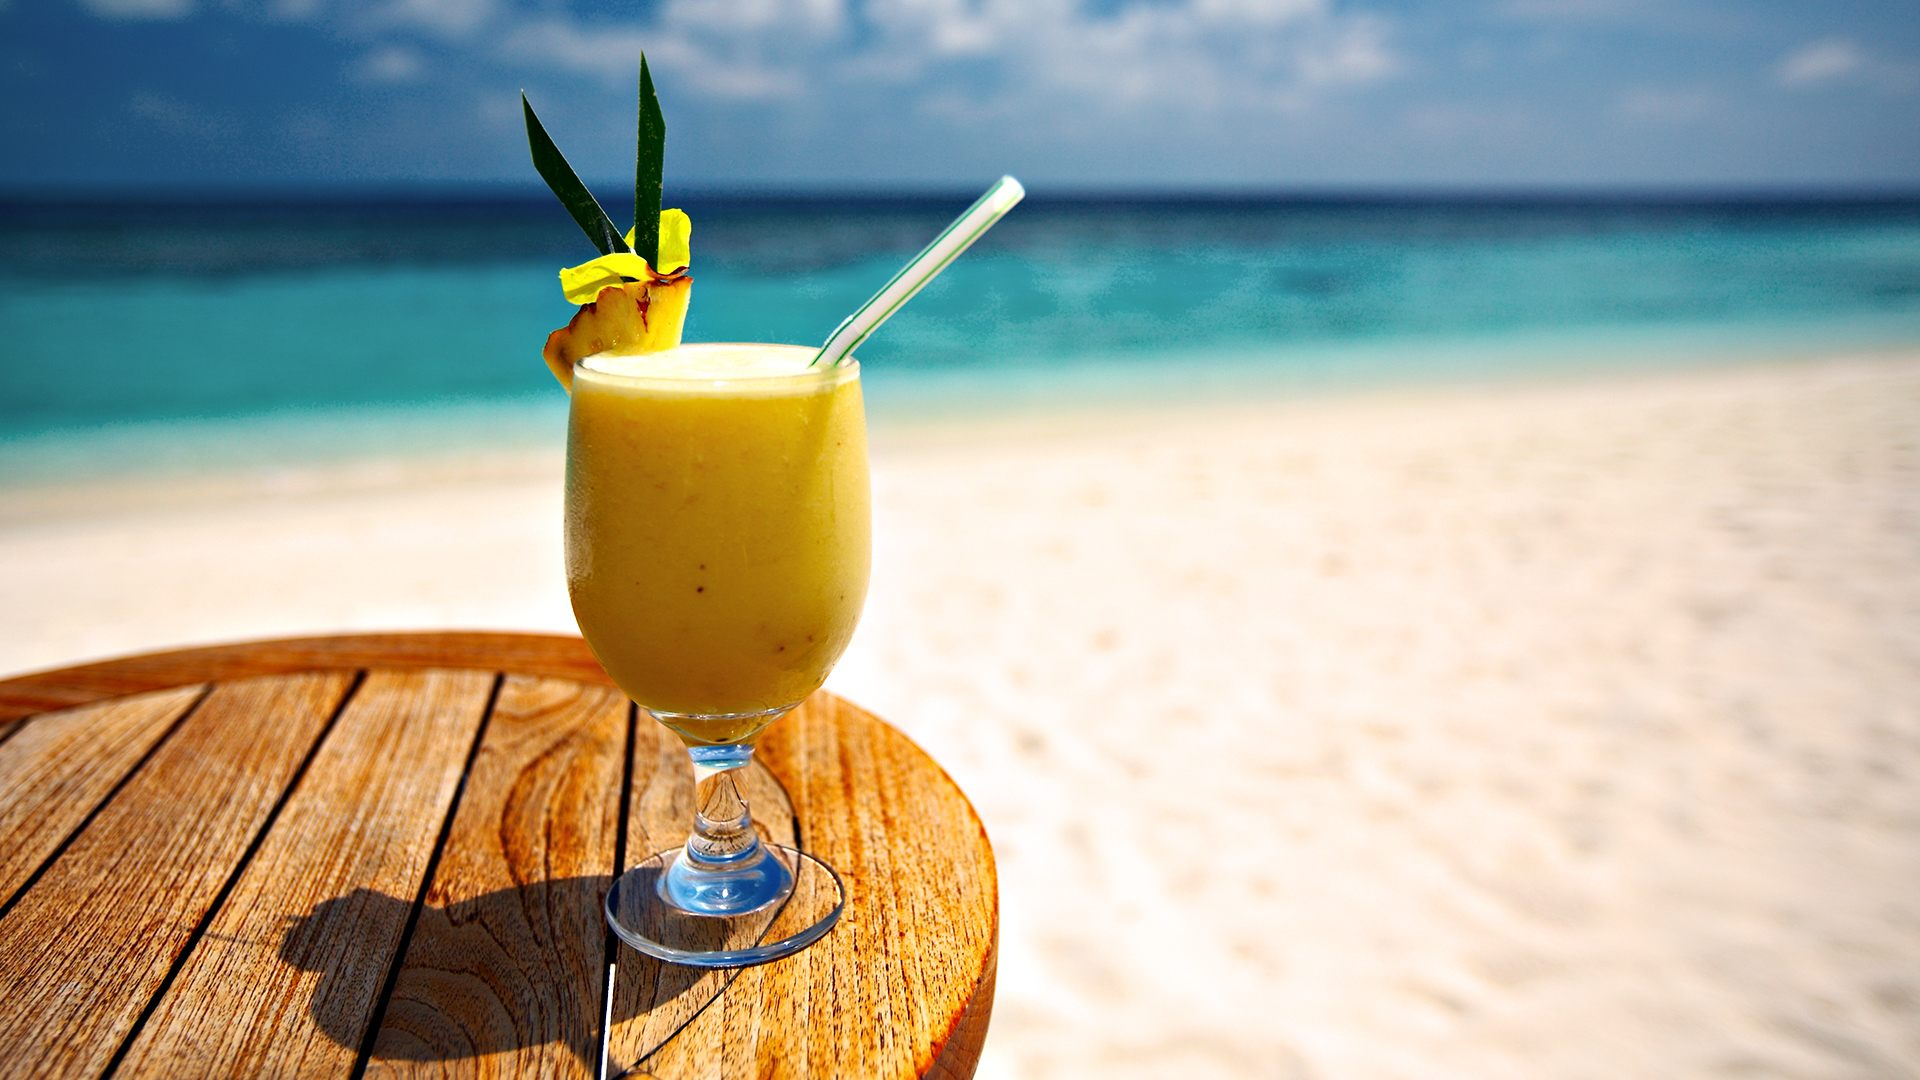 Drinks on the beach. Image credit not found. TravelSeeLove does not claim any rights to this image whatsoever.